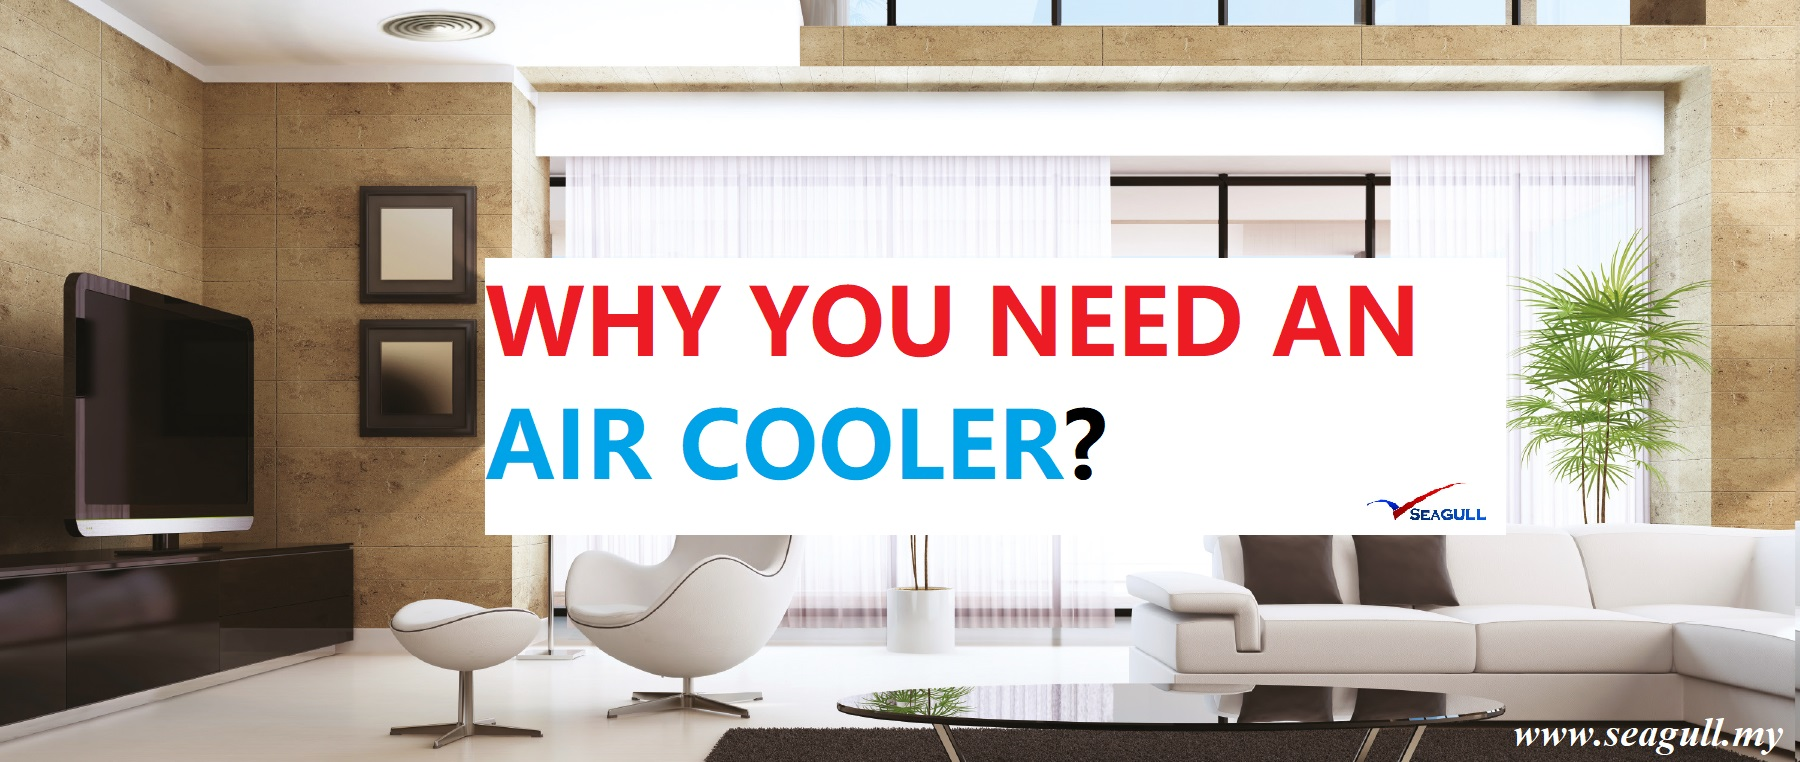 Why-you-need-an-air-cooler